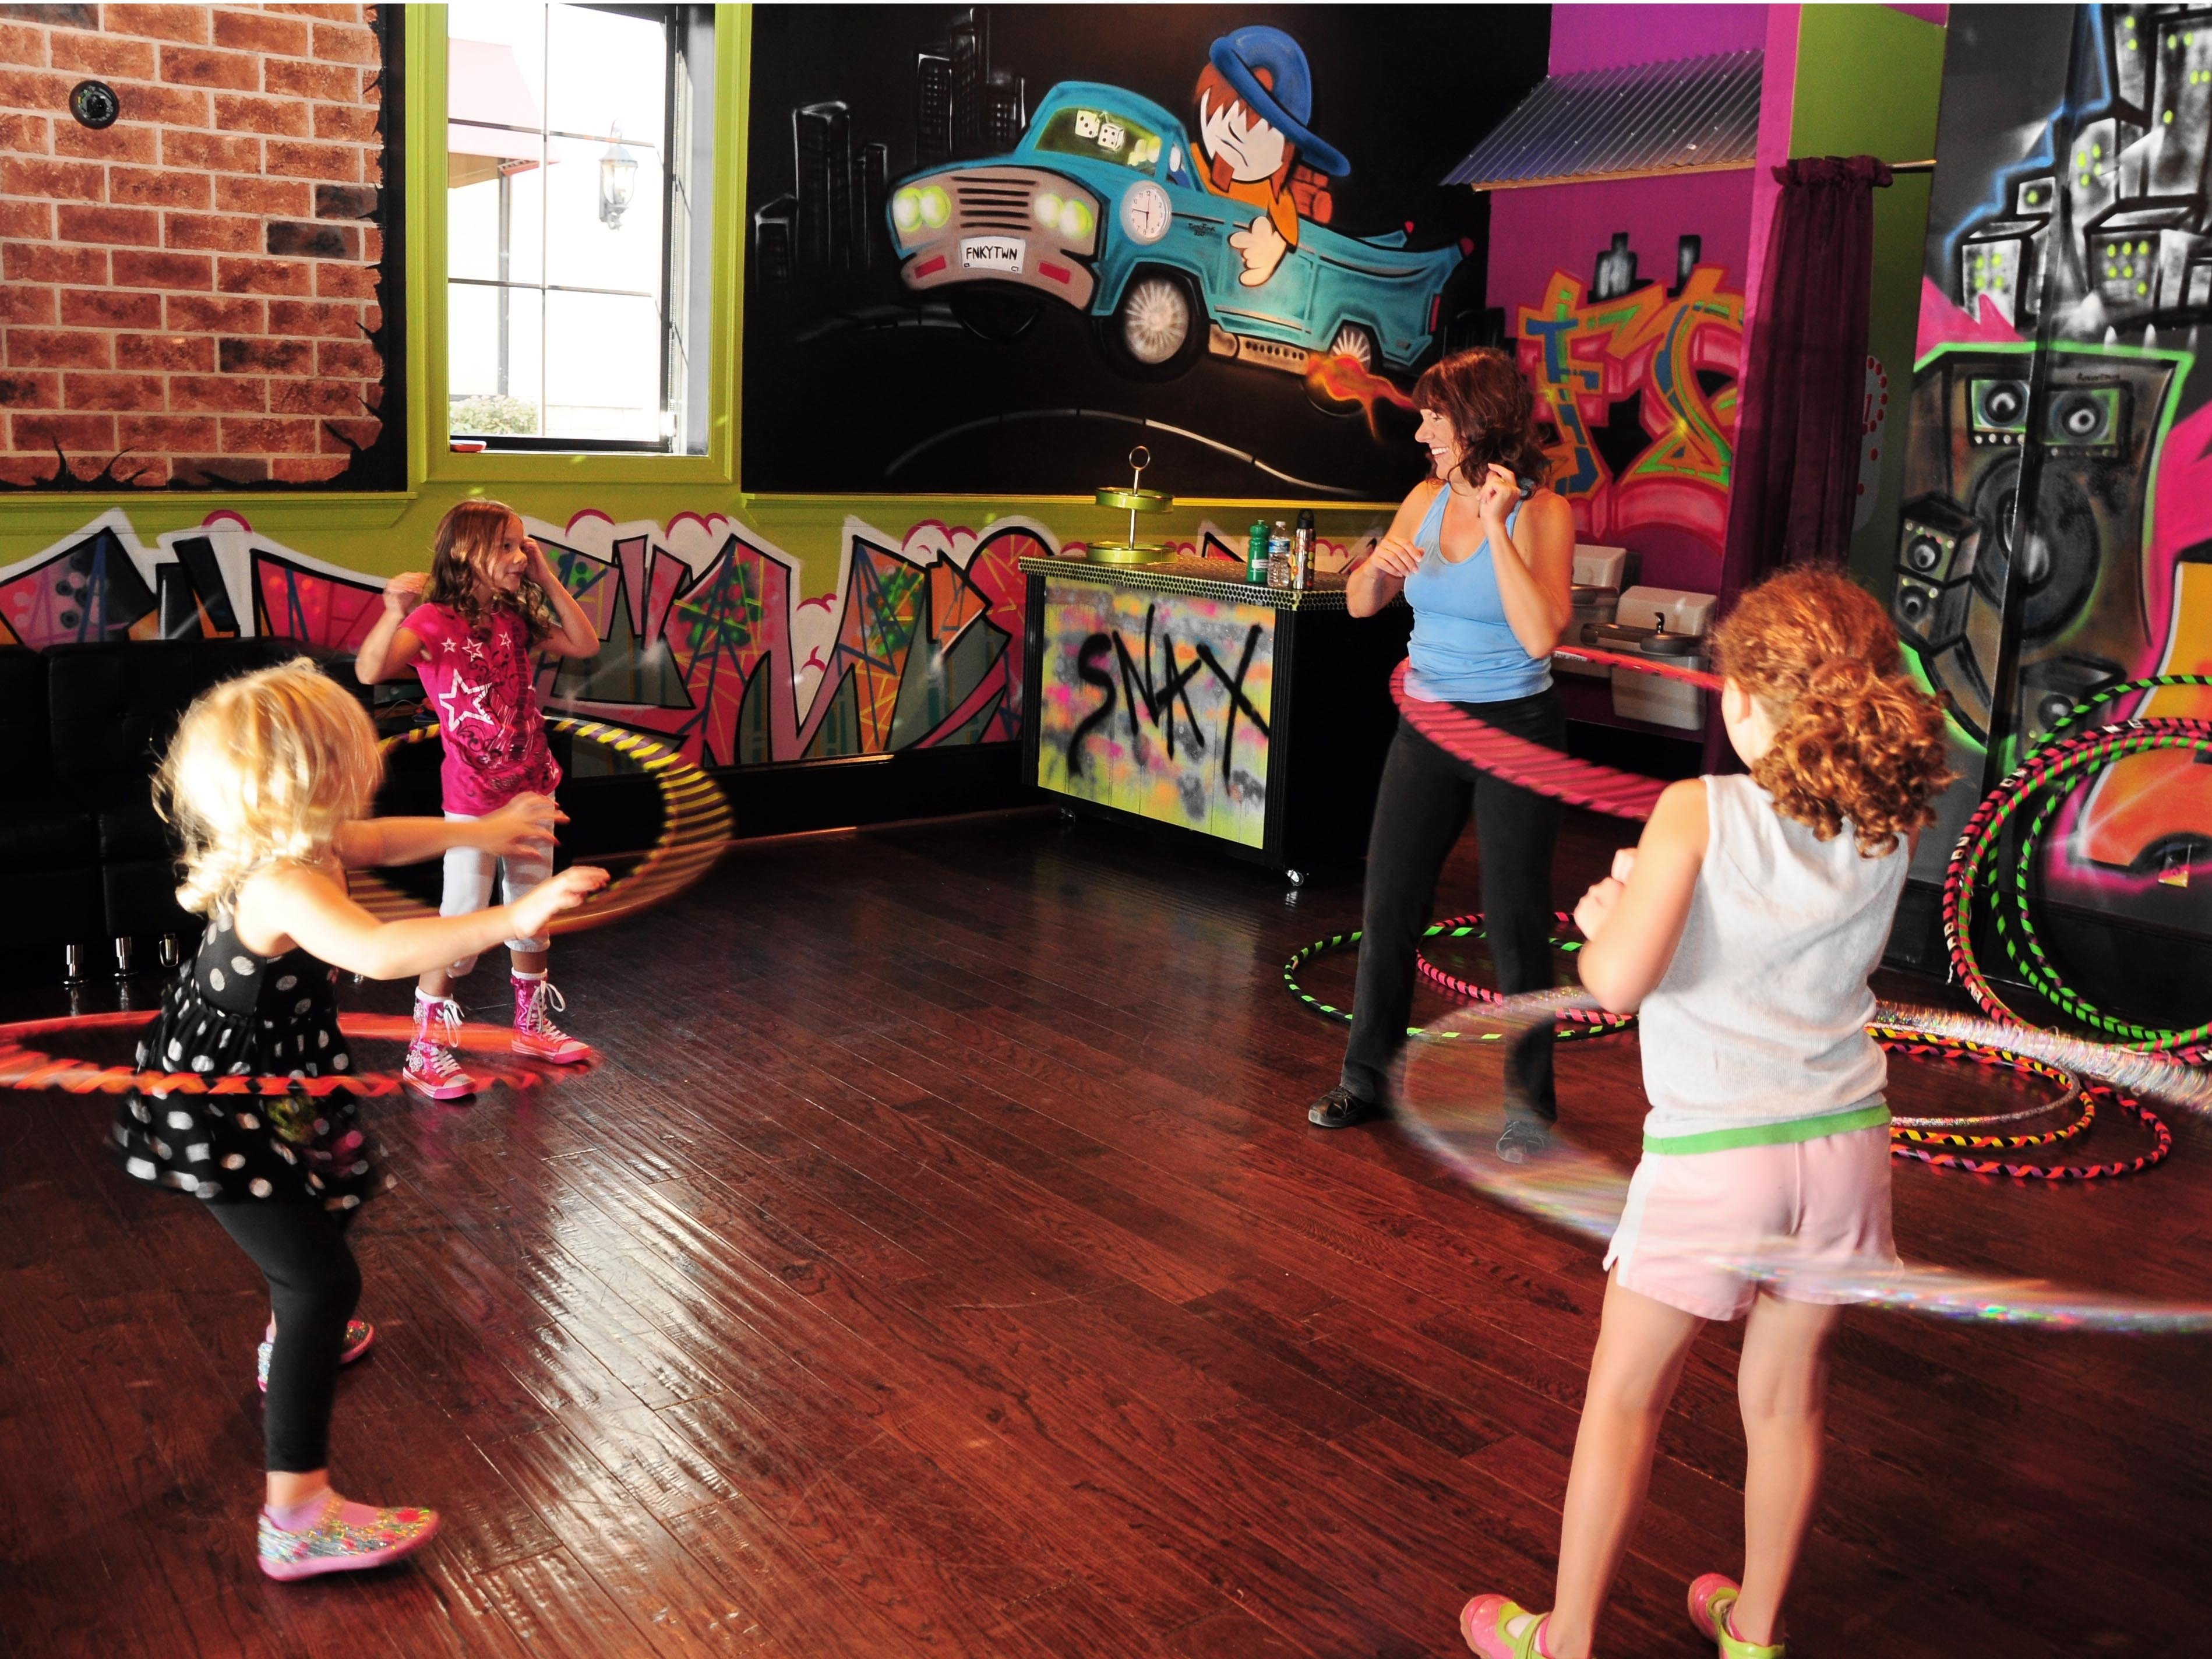 top 5 kids birthday party locations in charlotte, nc | occasiongenius